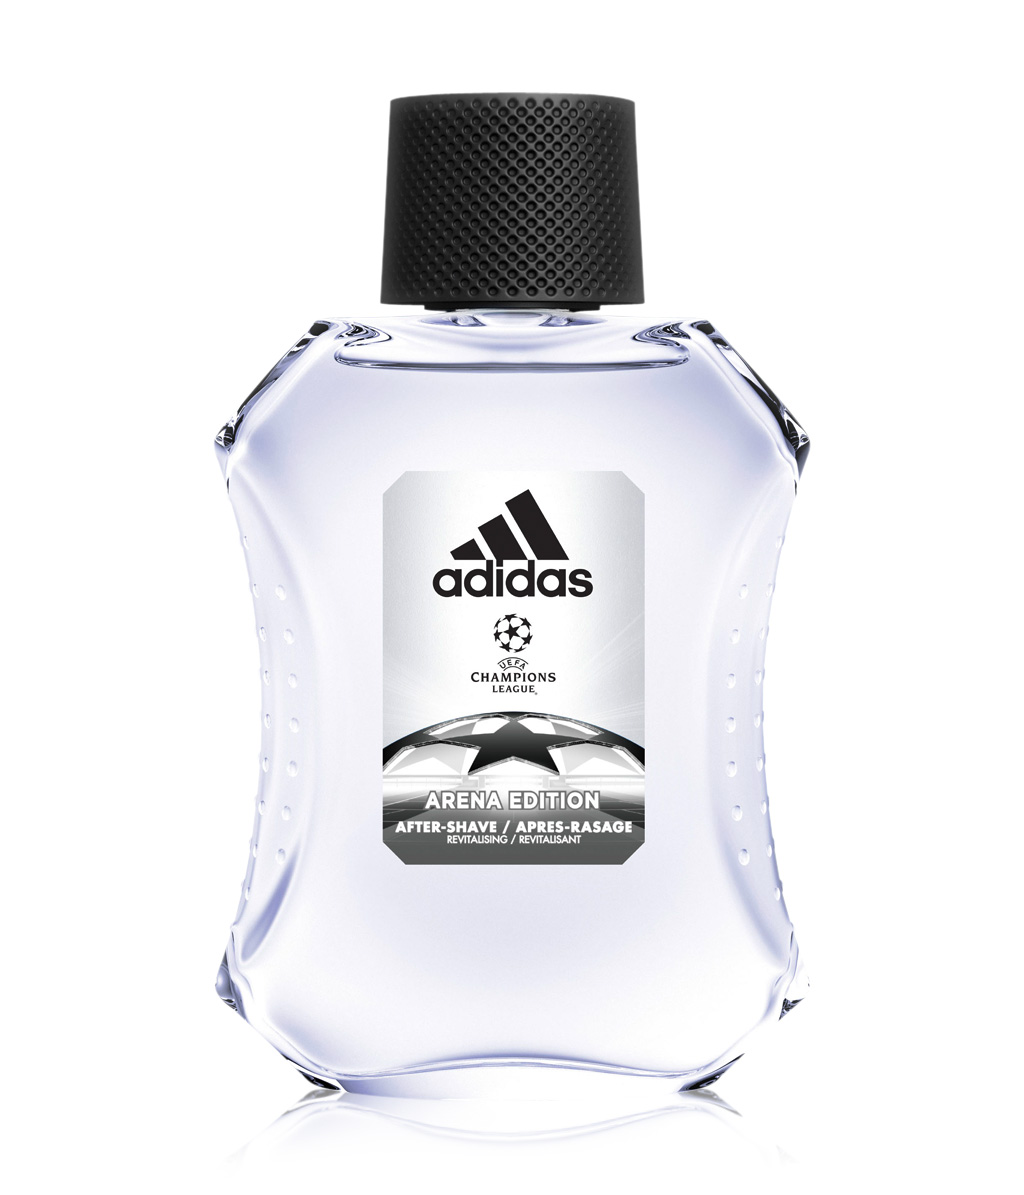 Adidas Uefa Champions League Arena Edition After Shave Lotion Tester